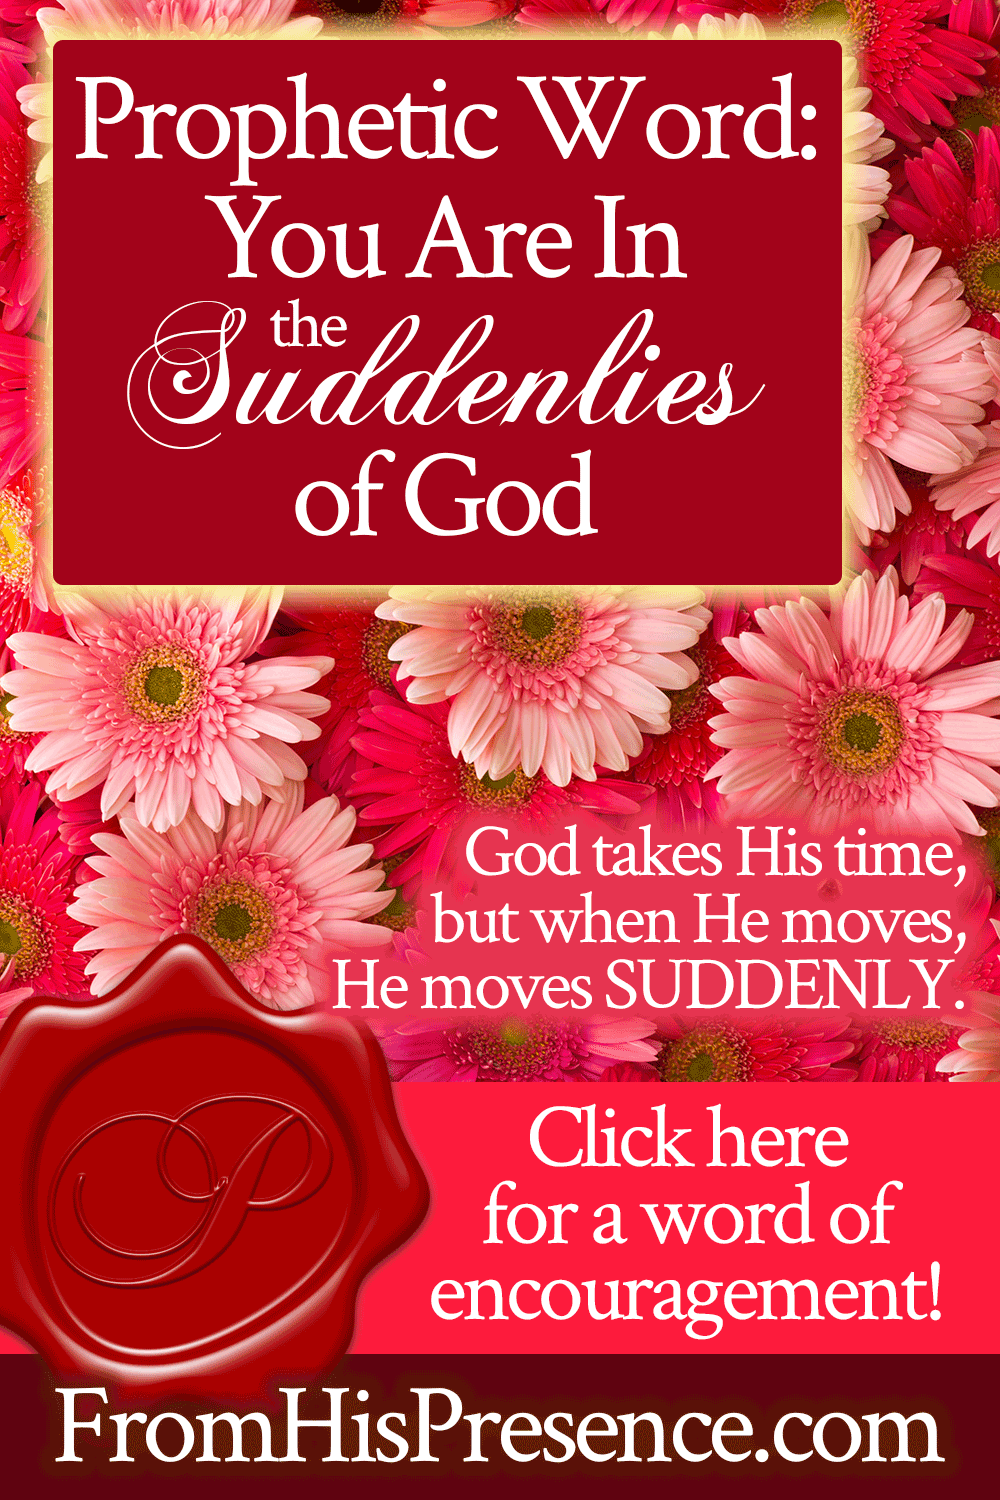 Prophetic Word: You Are In the Suddenlies of God   by Jamie Rohrbaugh   FromHisPresence.com